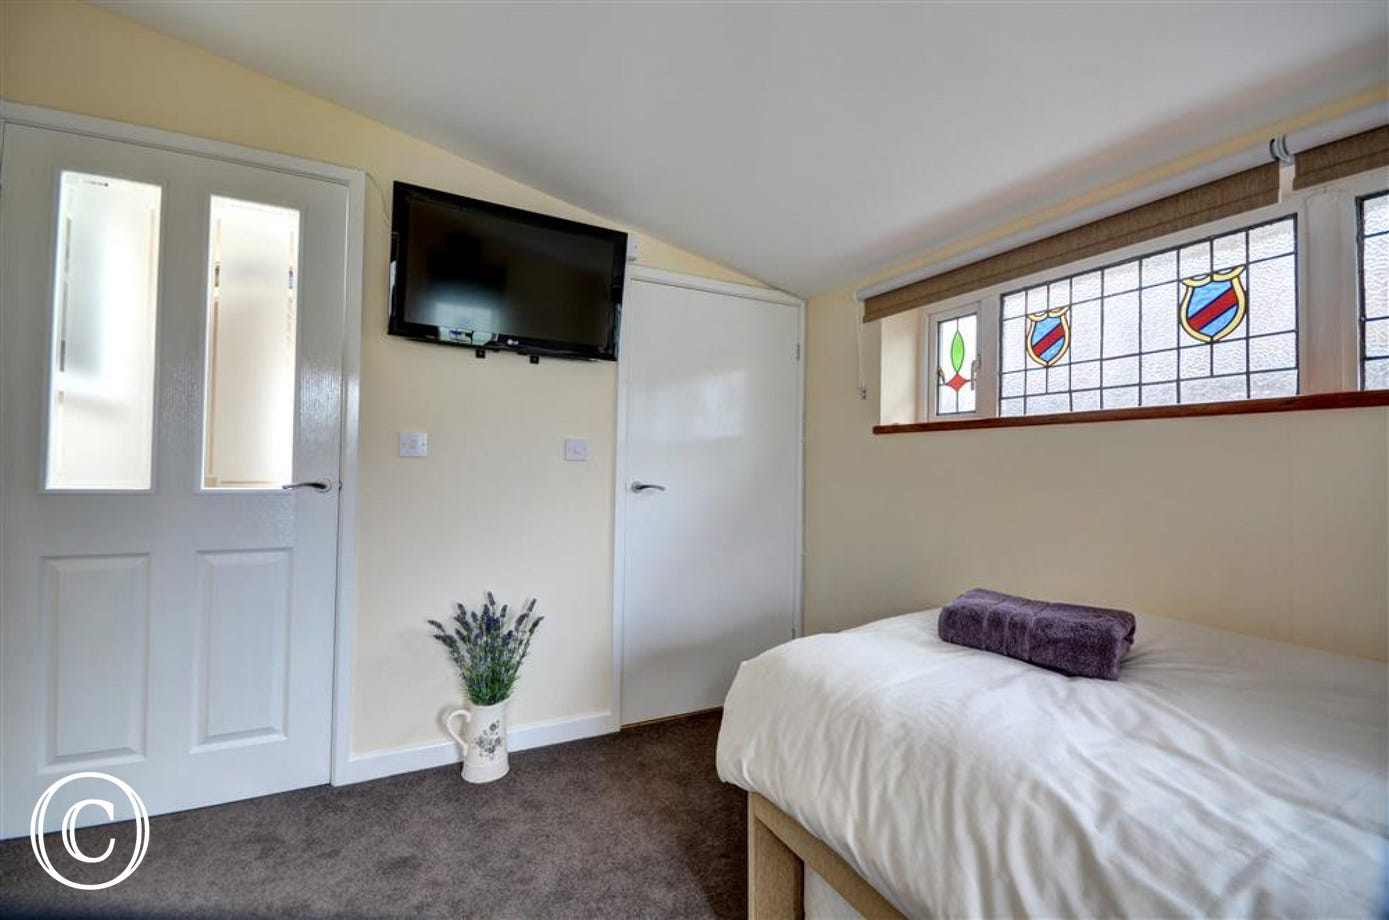 Bedroom 3 has a single bed, TV and En suite